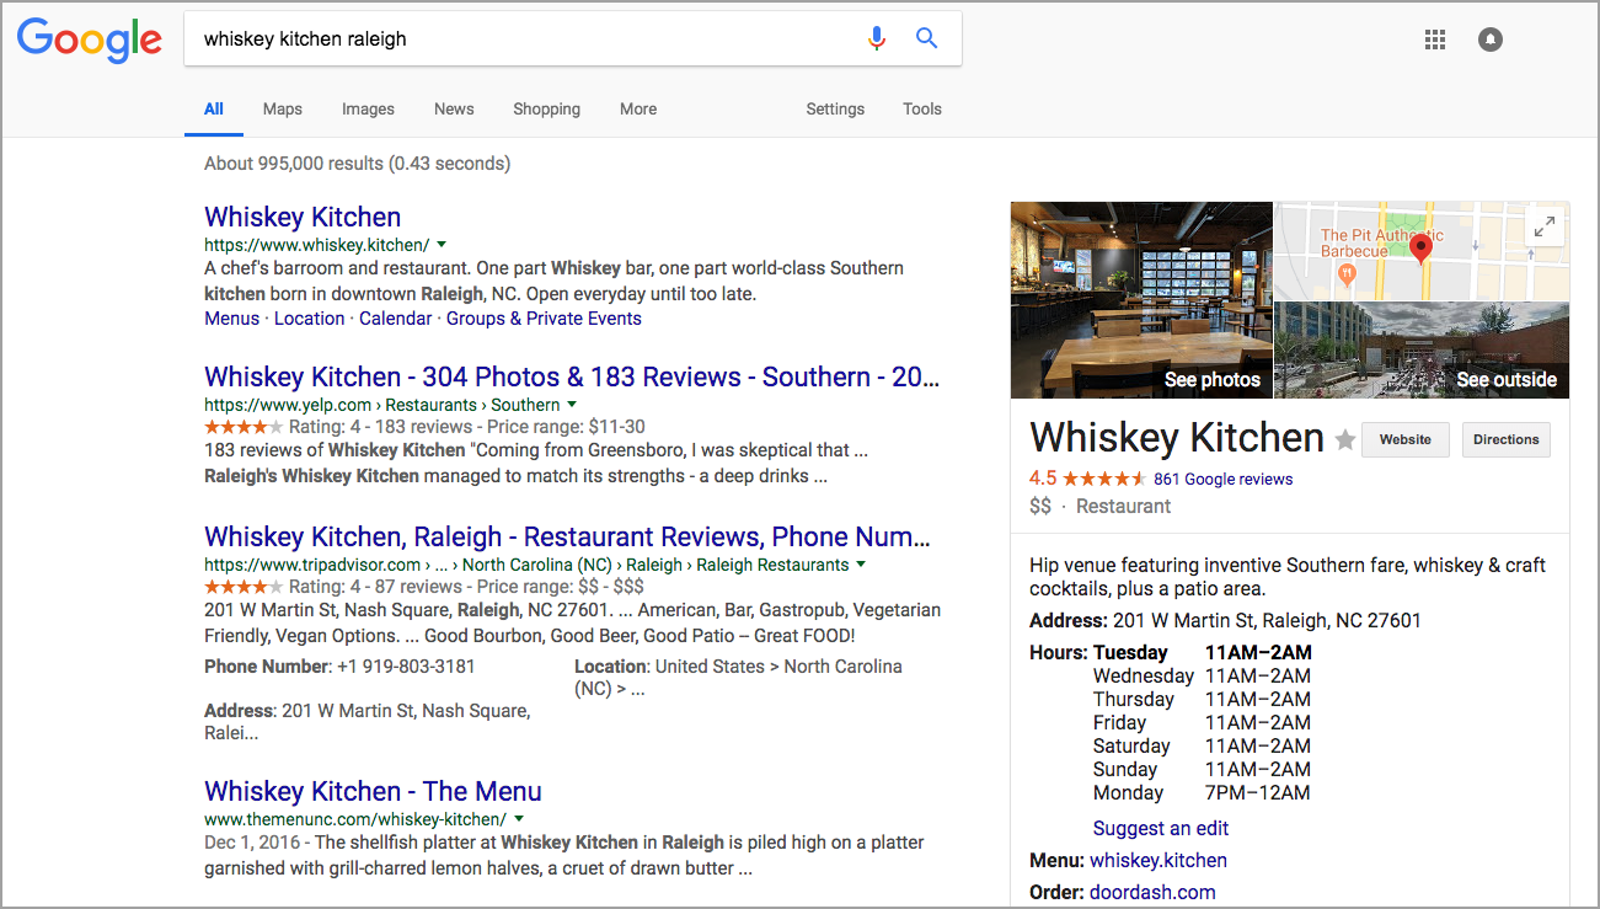 Whiskey Kitchen Google Search Screenshot